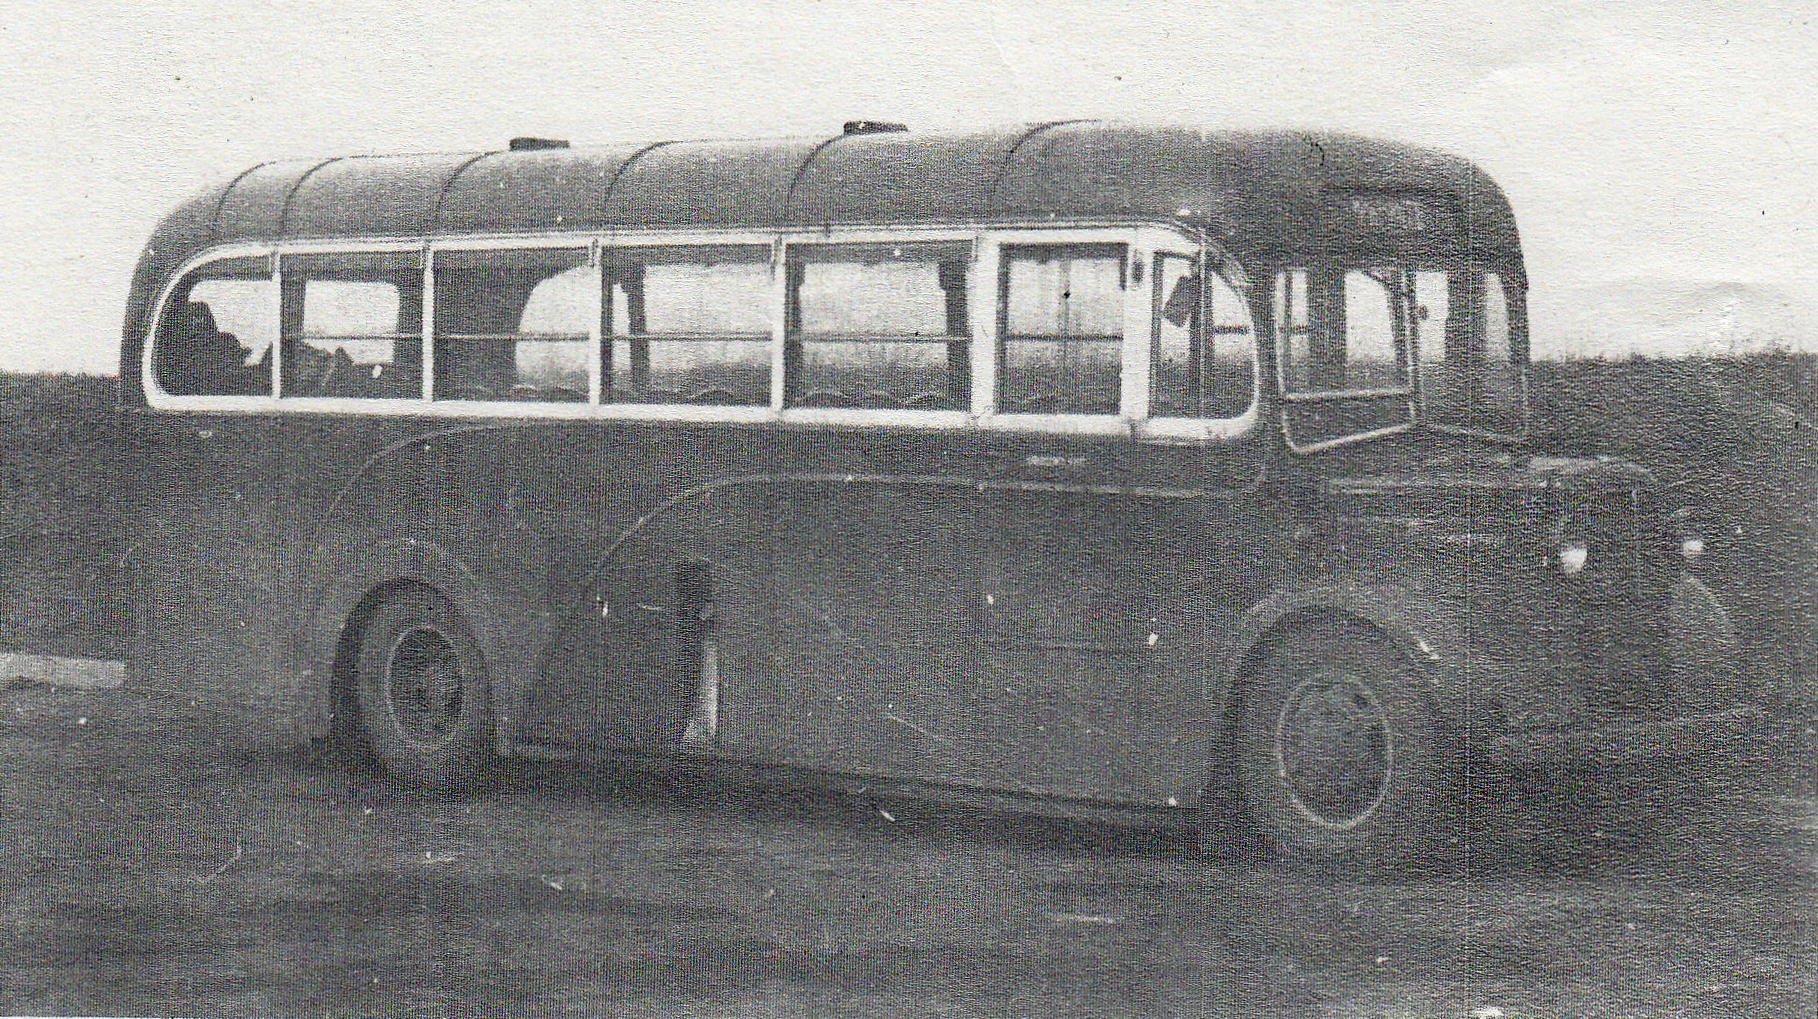 Campbell's Bus